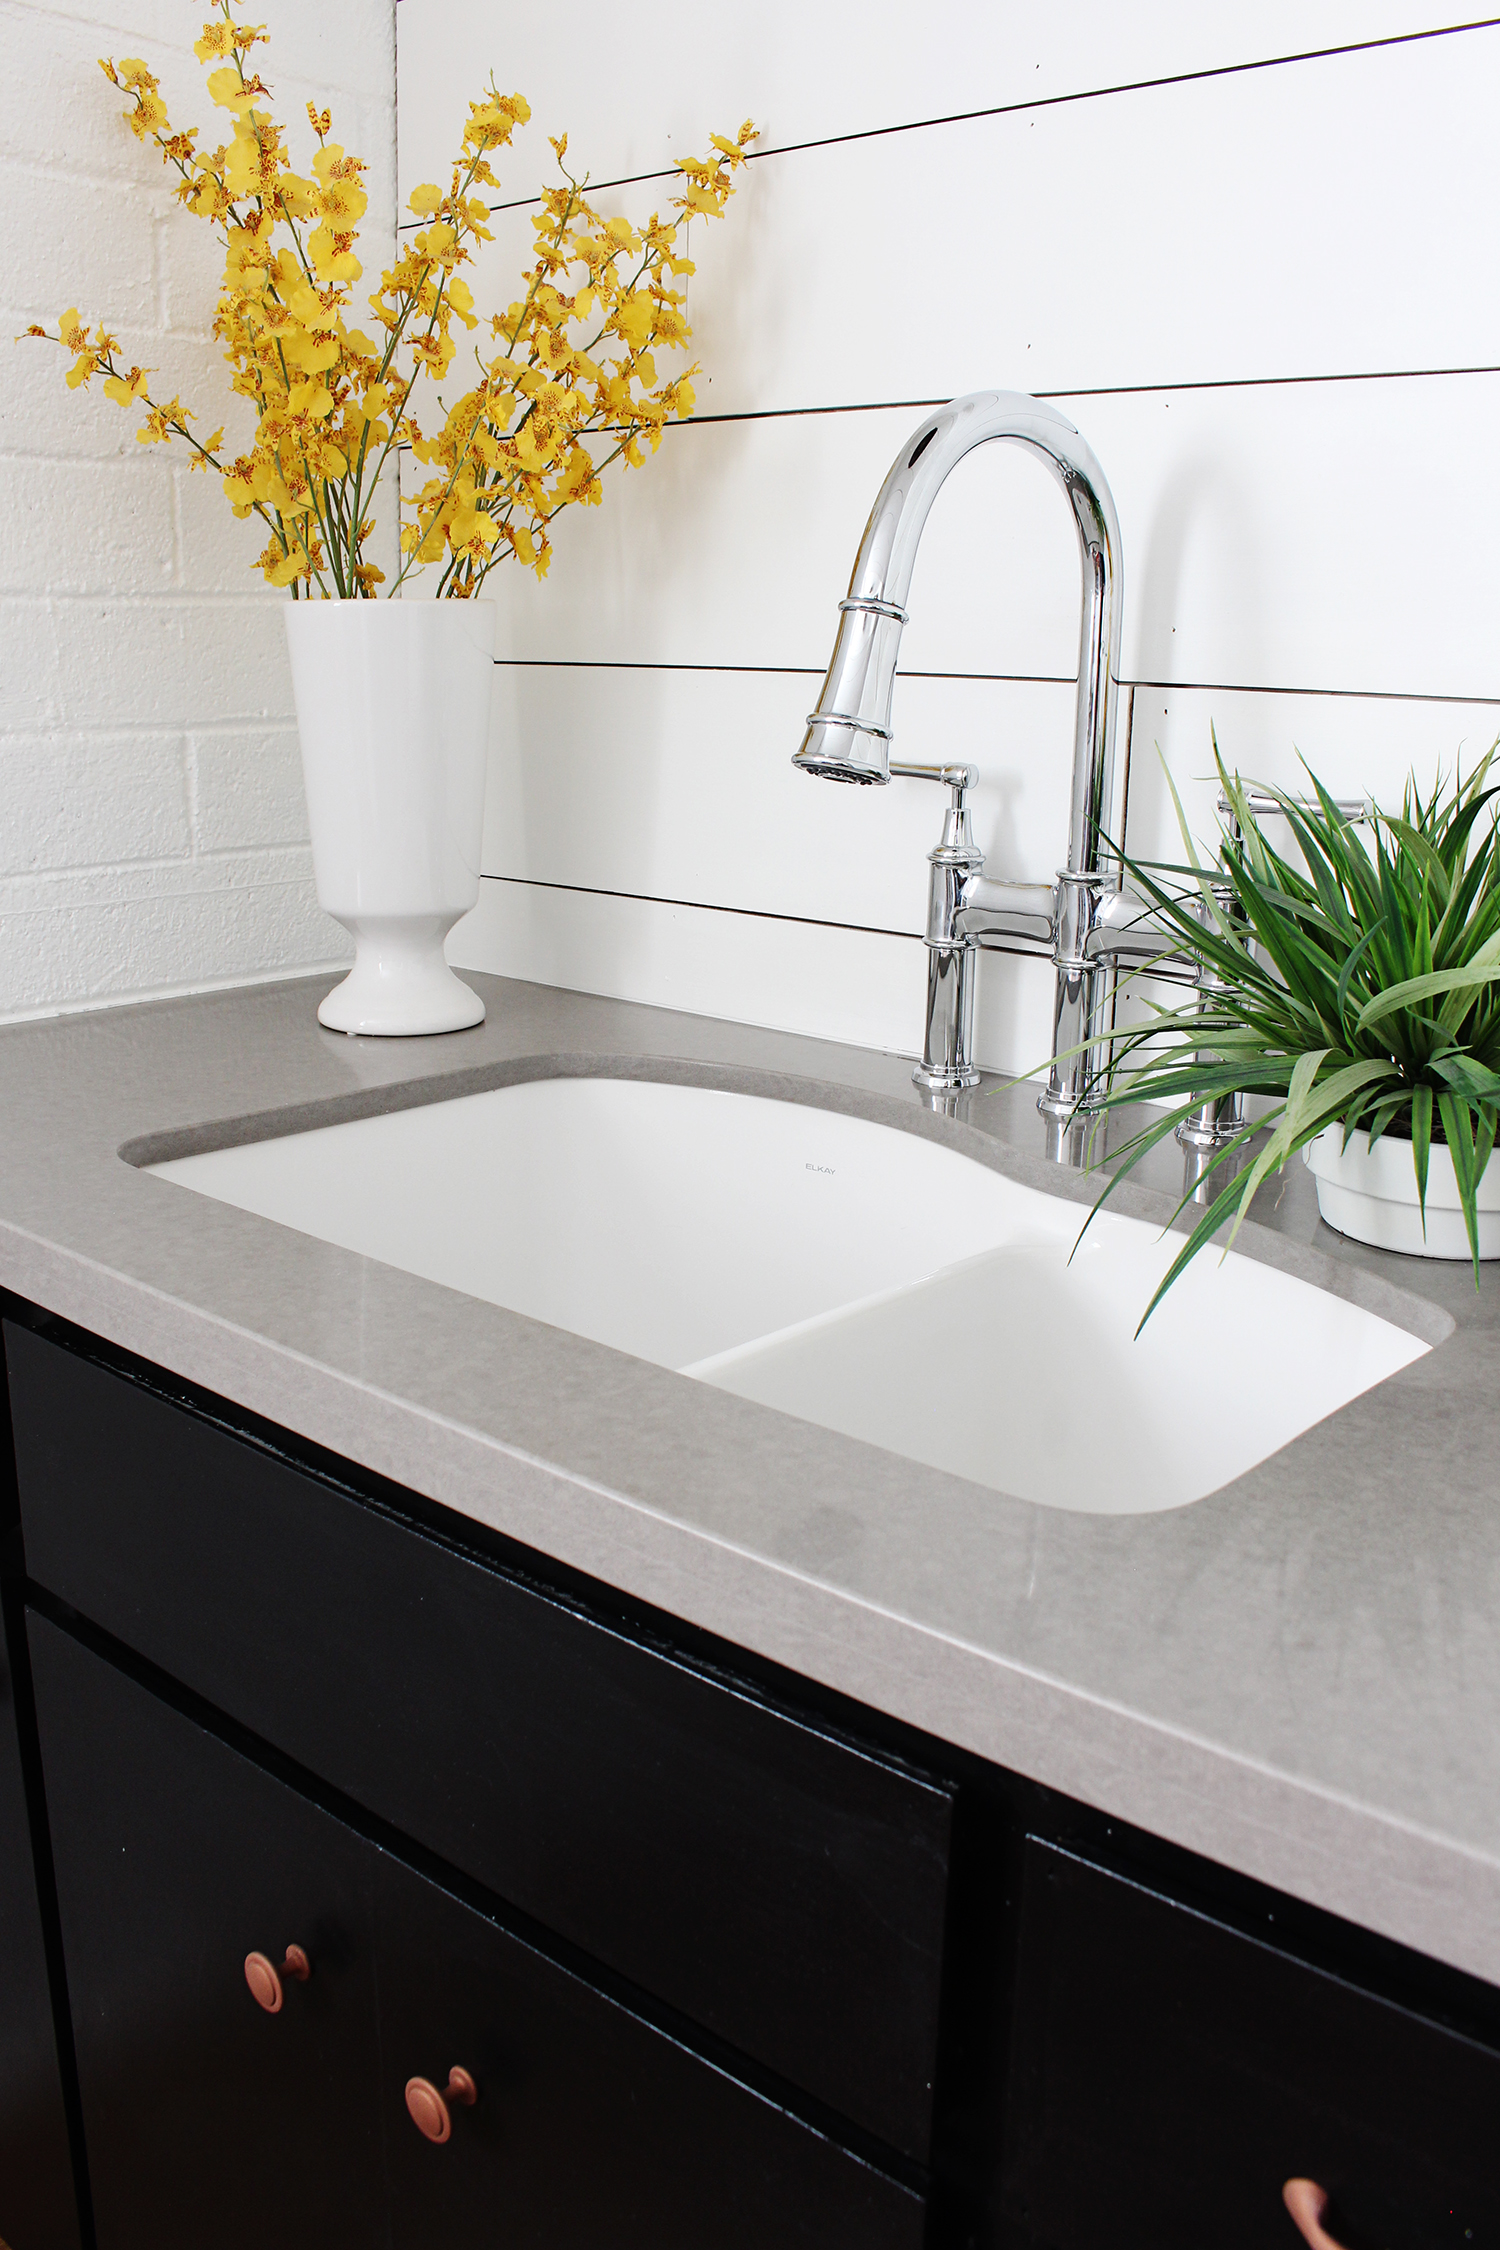 ... Farmhouse Sinks If Thatu0027s More Your Jam! They Have So Many Amazing  Options. We Also Chose The Elkay Explore Three Hole Bridge Faucet In Chrome  Which Is ...